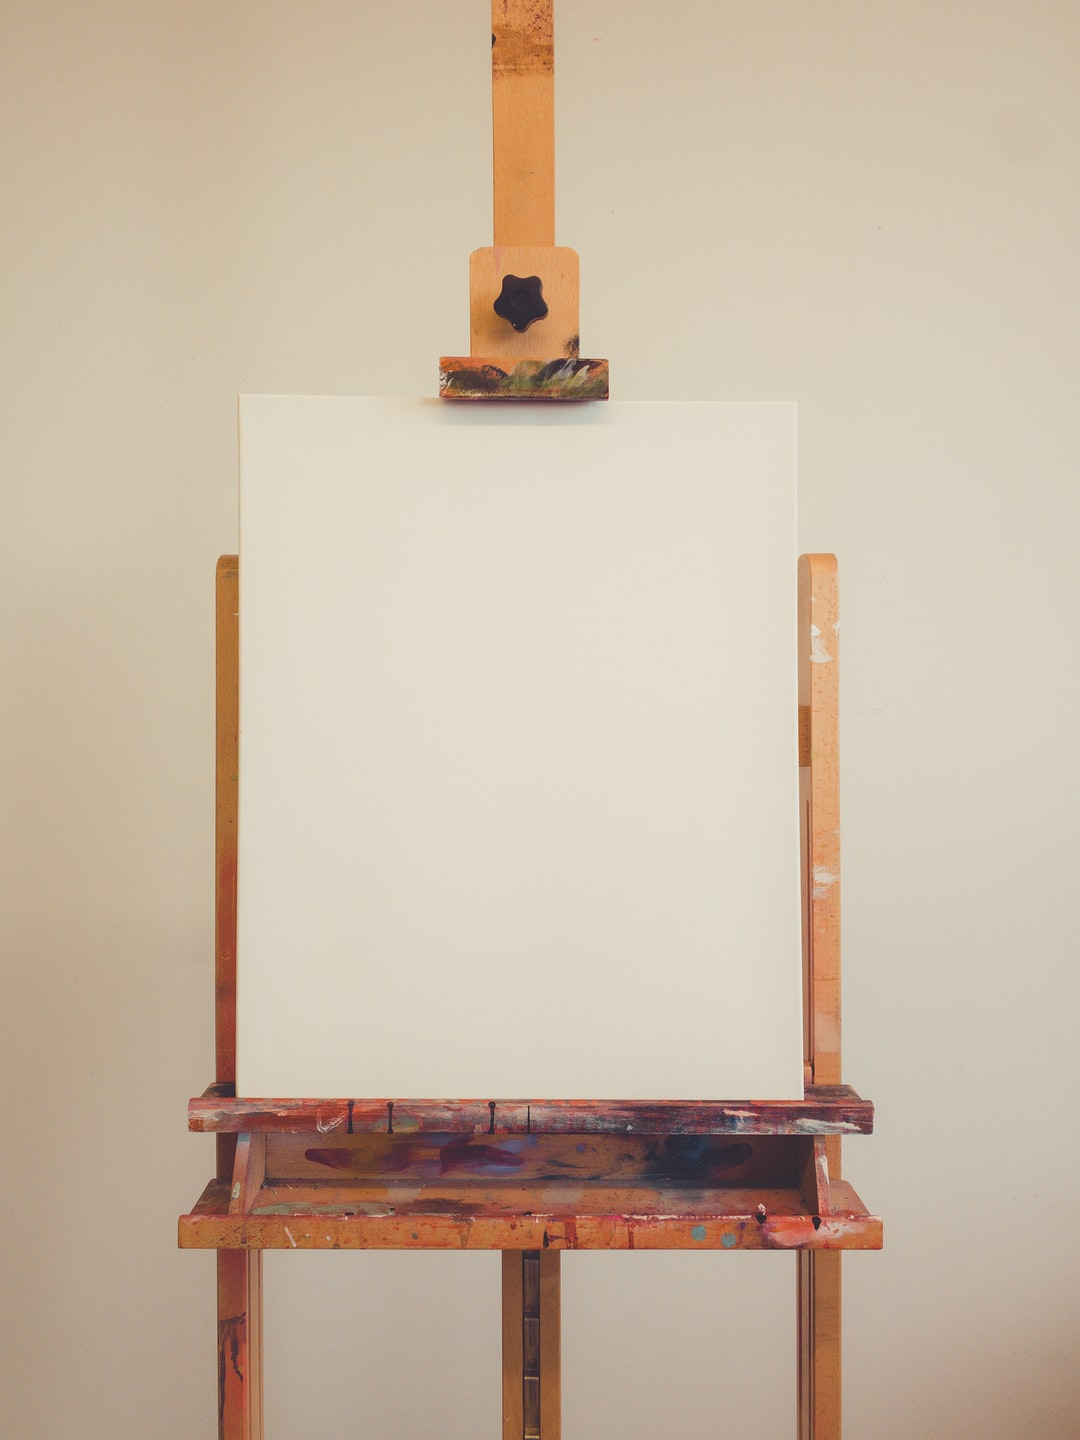 Canvas on an easel in art studio.